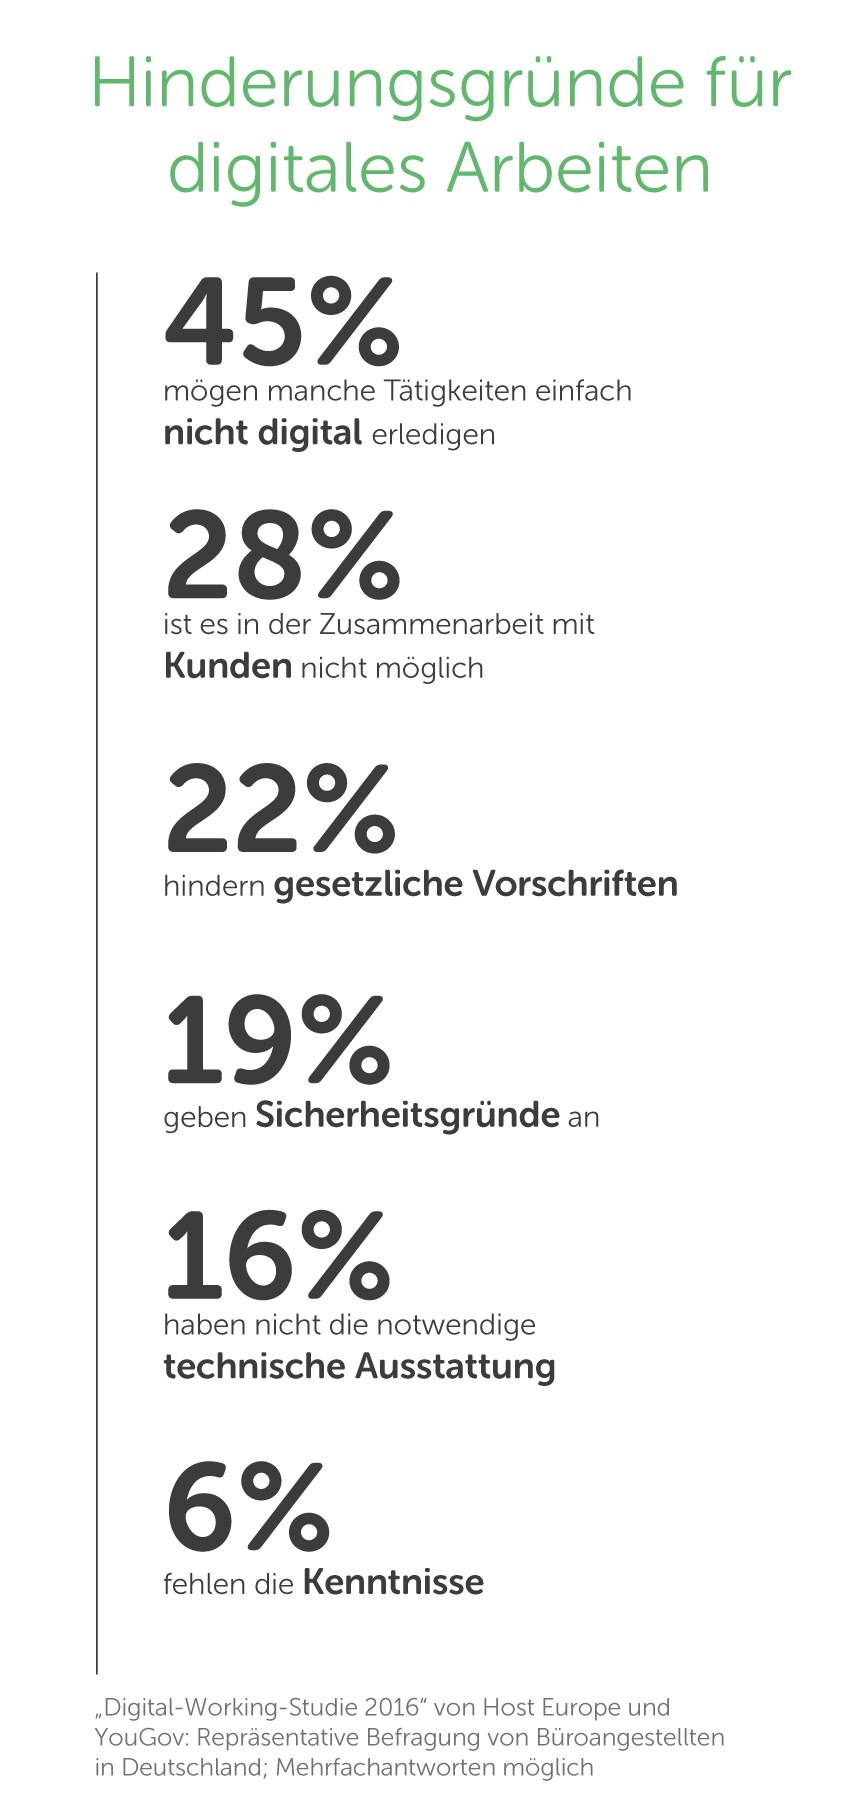 grafik-host-europe-hinderungsgruende-digitales-arbeiten